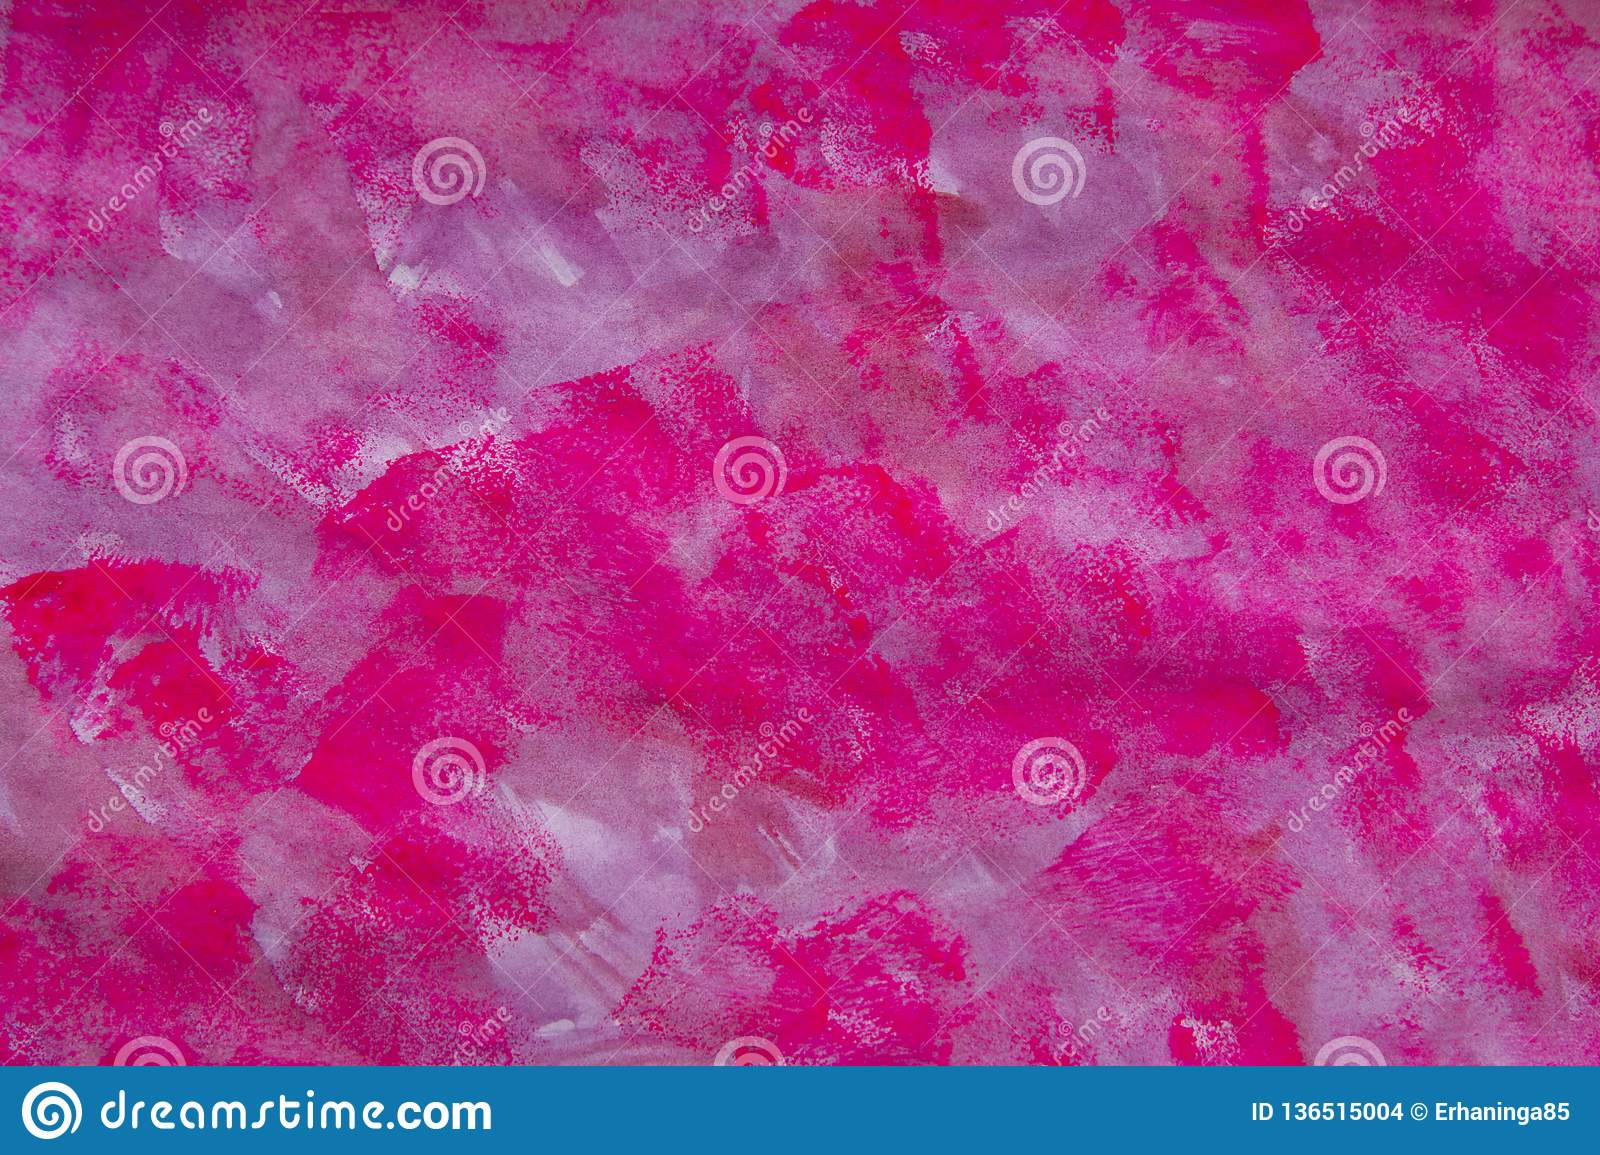 Pink, fuchsia hand painted texture, background - red paint brush strokes. Watercolor.